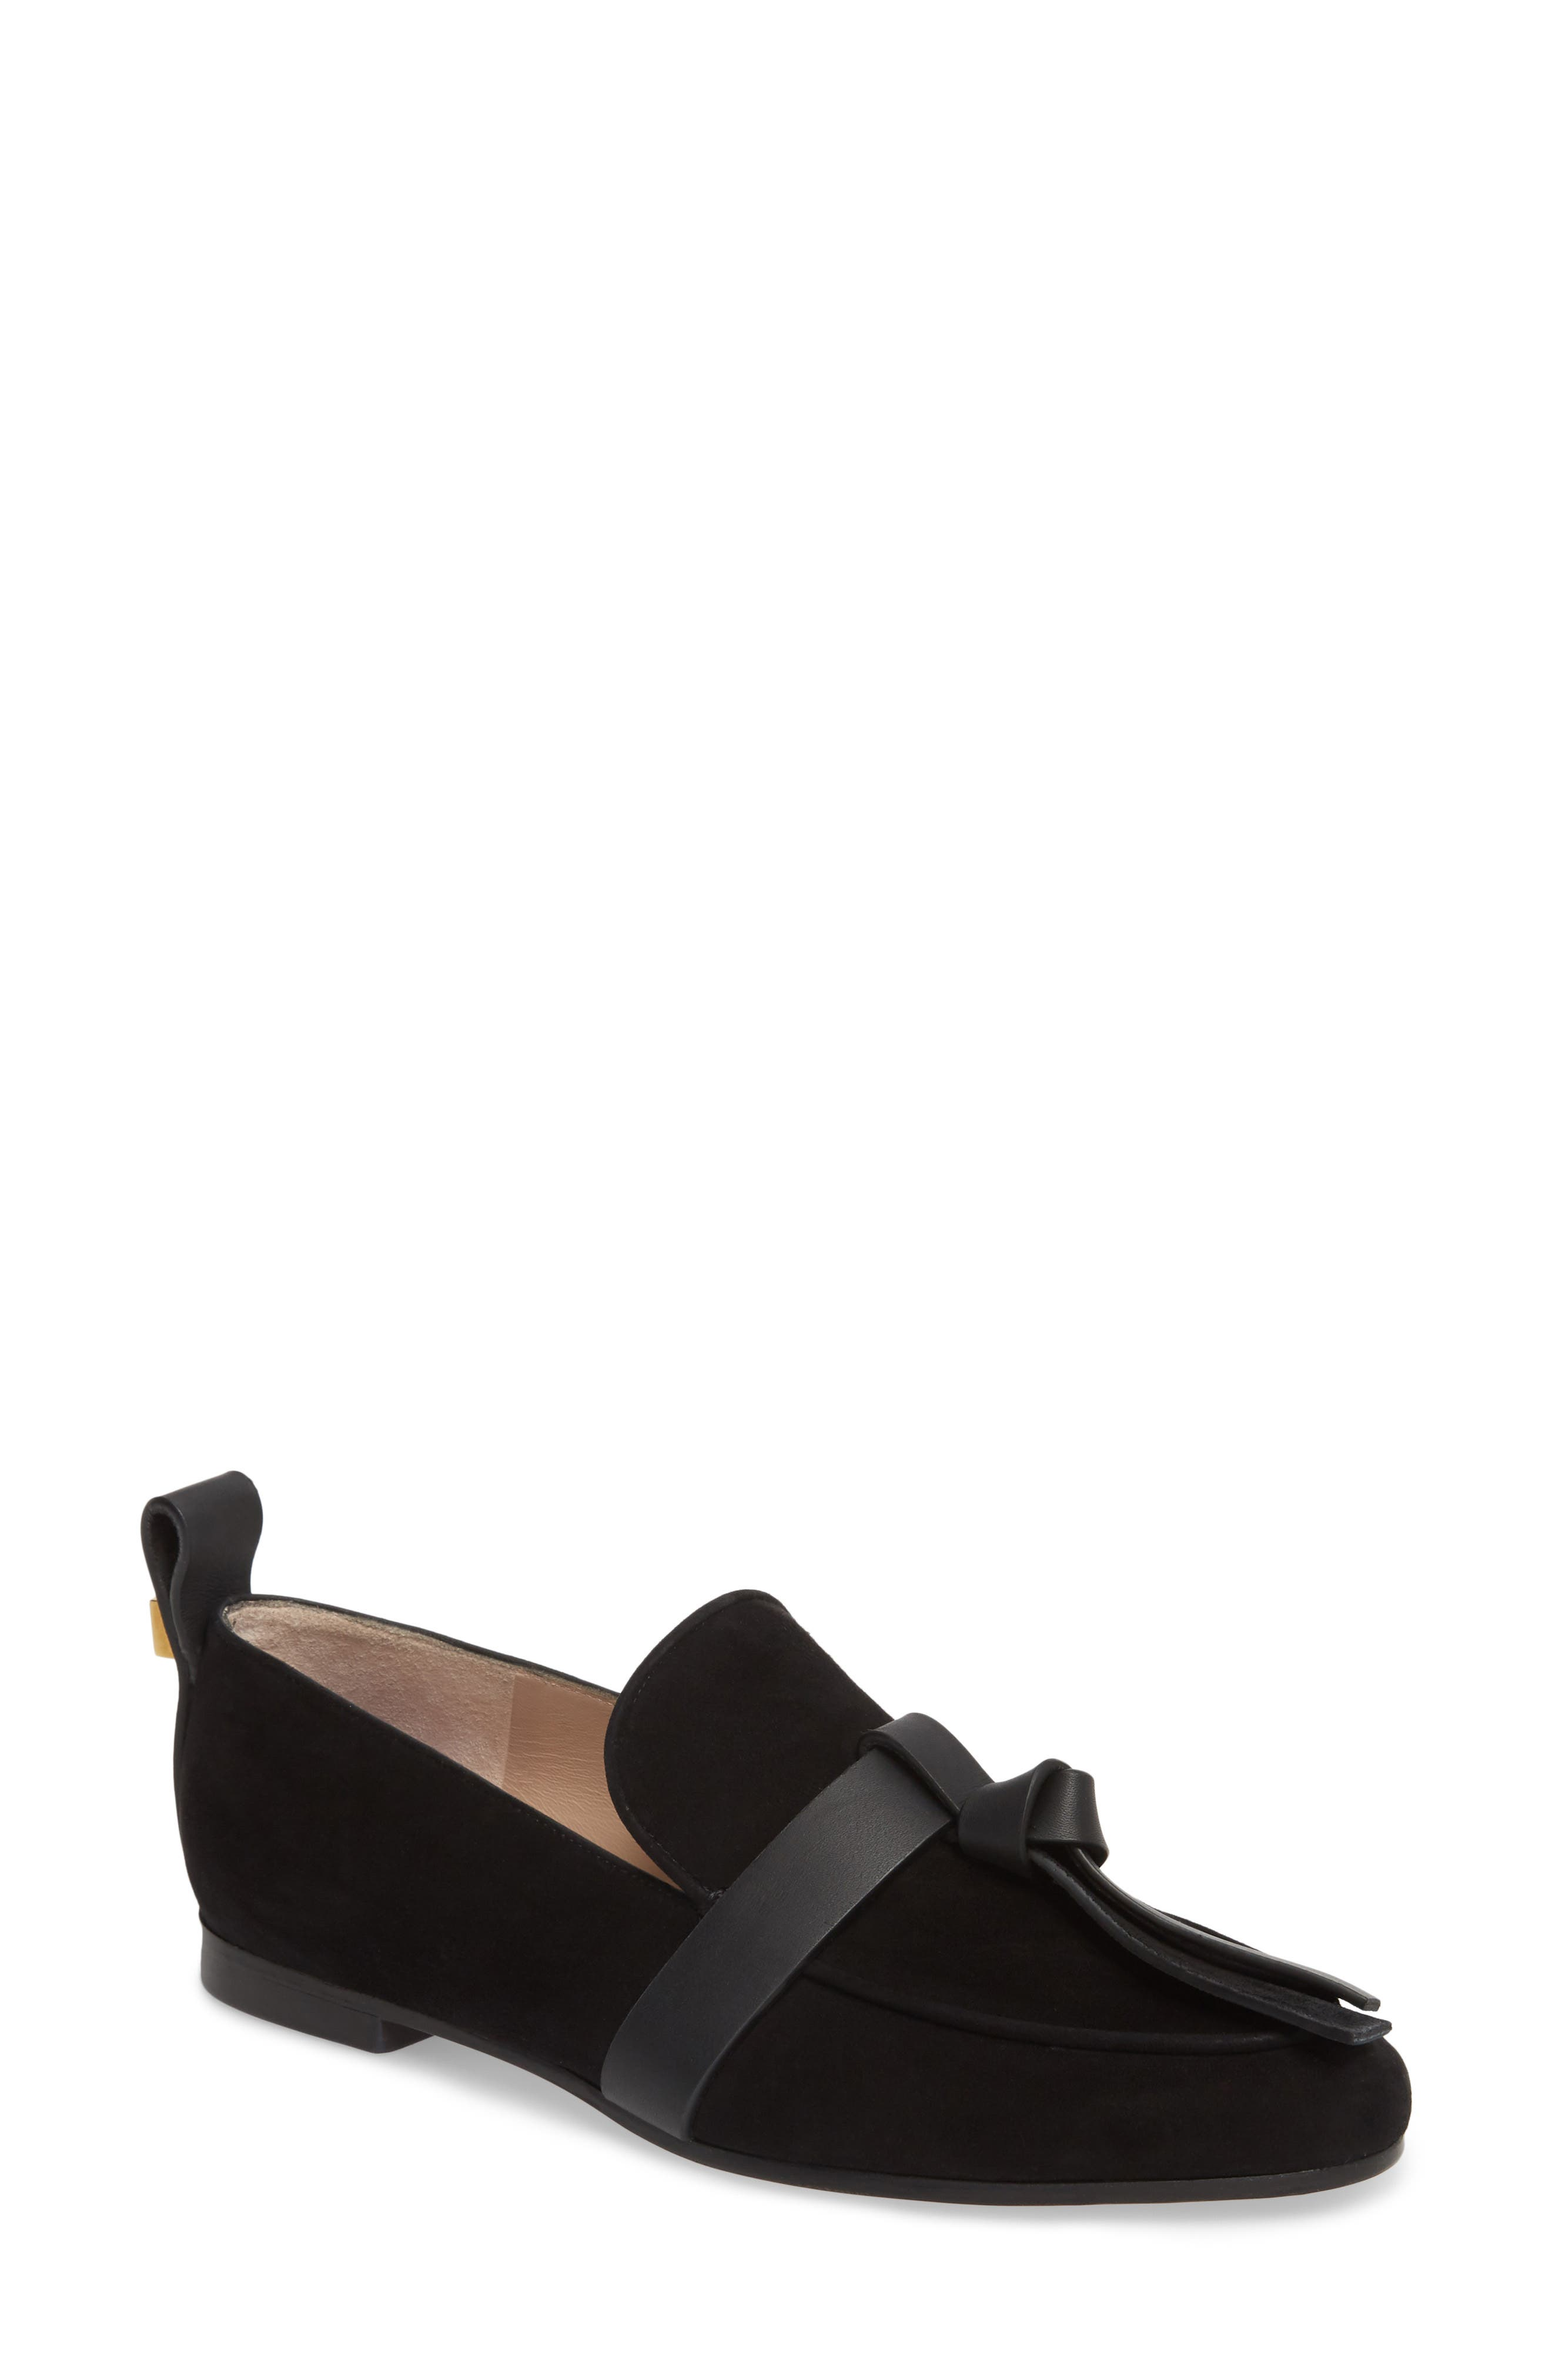 Prescott Knotted Loafer by Stuart Weitzman